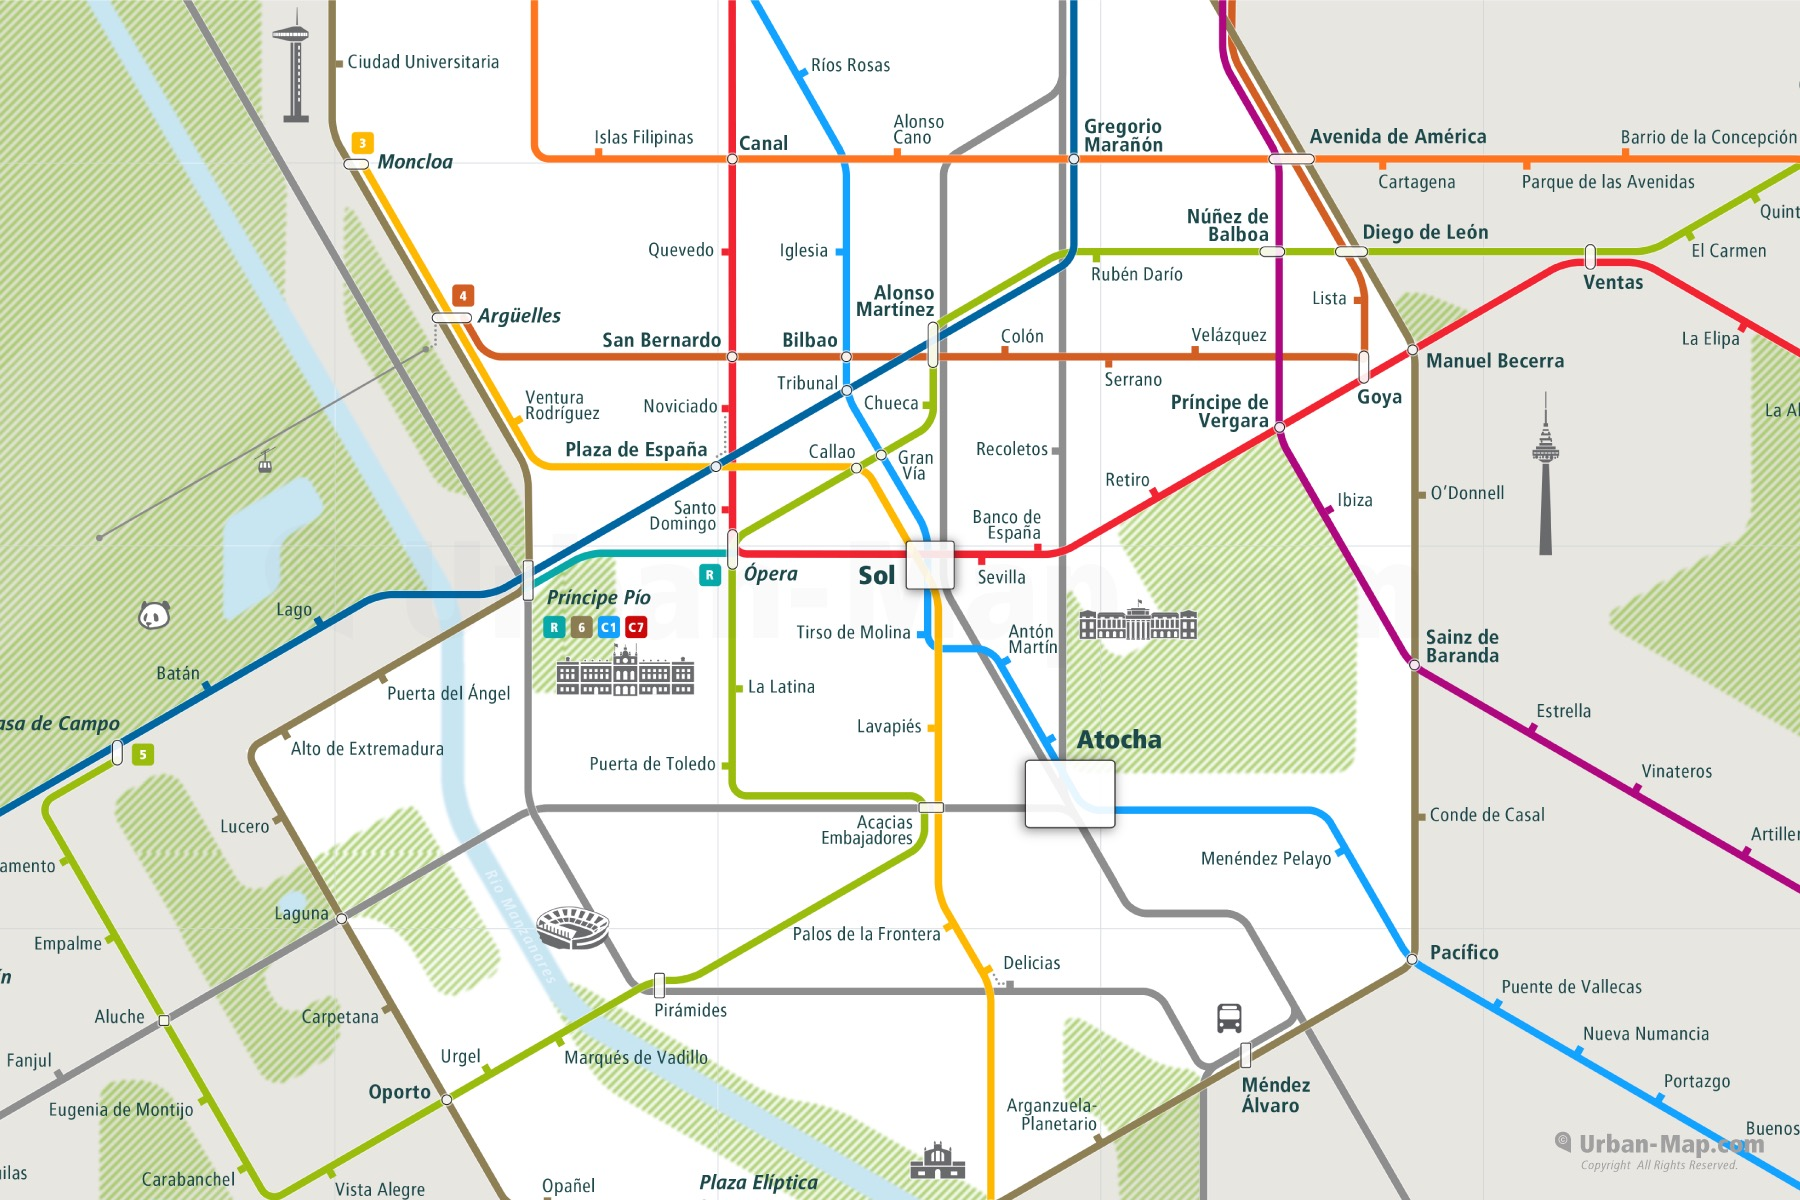 Madrid City Rail Map shows the train and public transportation routes of metro - Close-Up